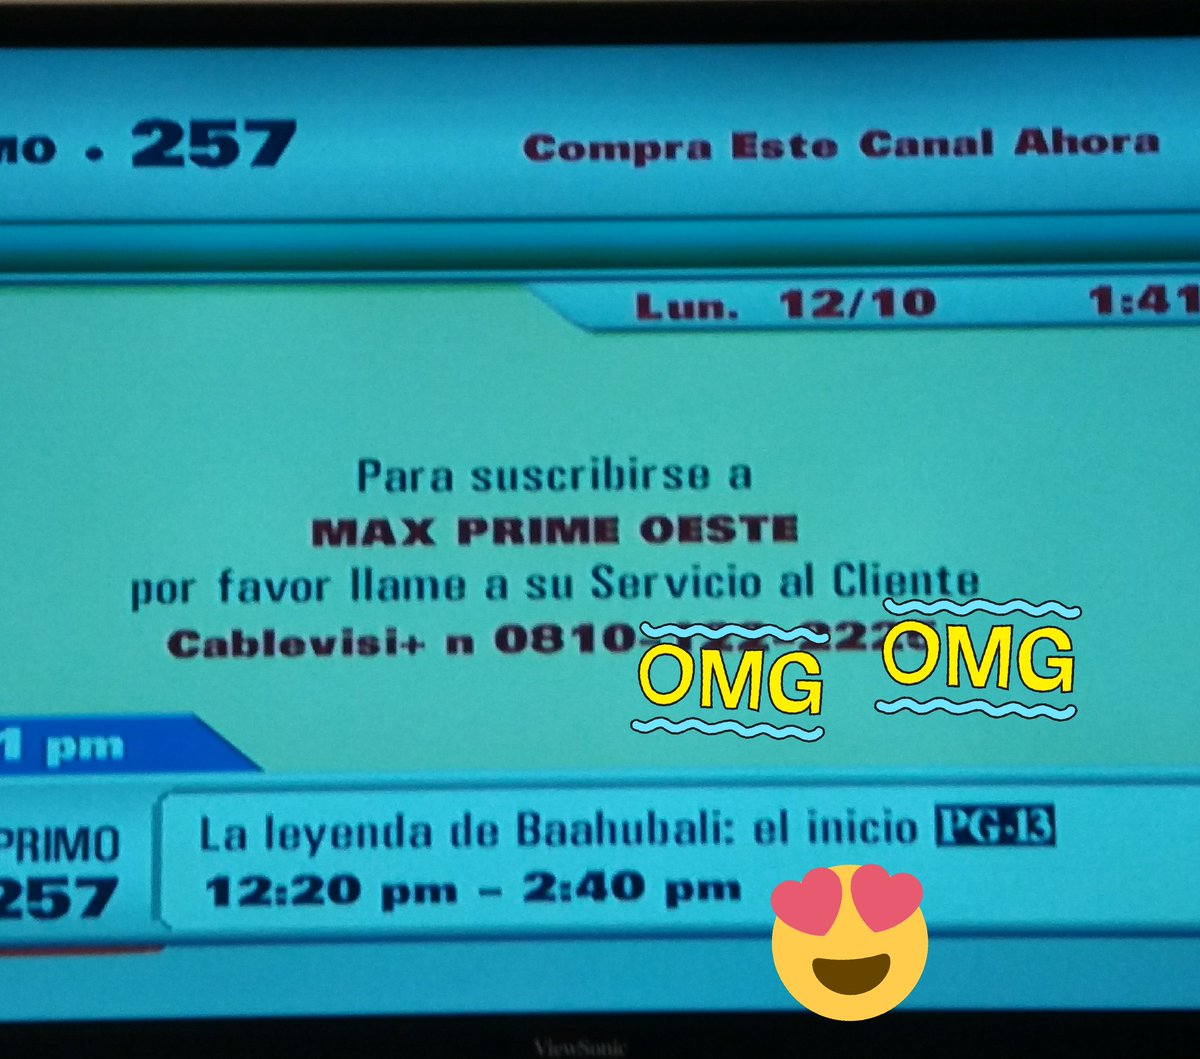 I was changing the channel and I find that my favorite movie @BaahubaliMovie is happening and I can not see it, its very Monday today😕In Argentina. @RanaDaggubati Please🙏🙏,if you say hello,Im happy Monday and all week,etc.Kisses🤗😉